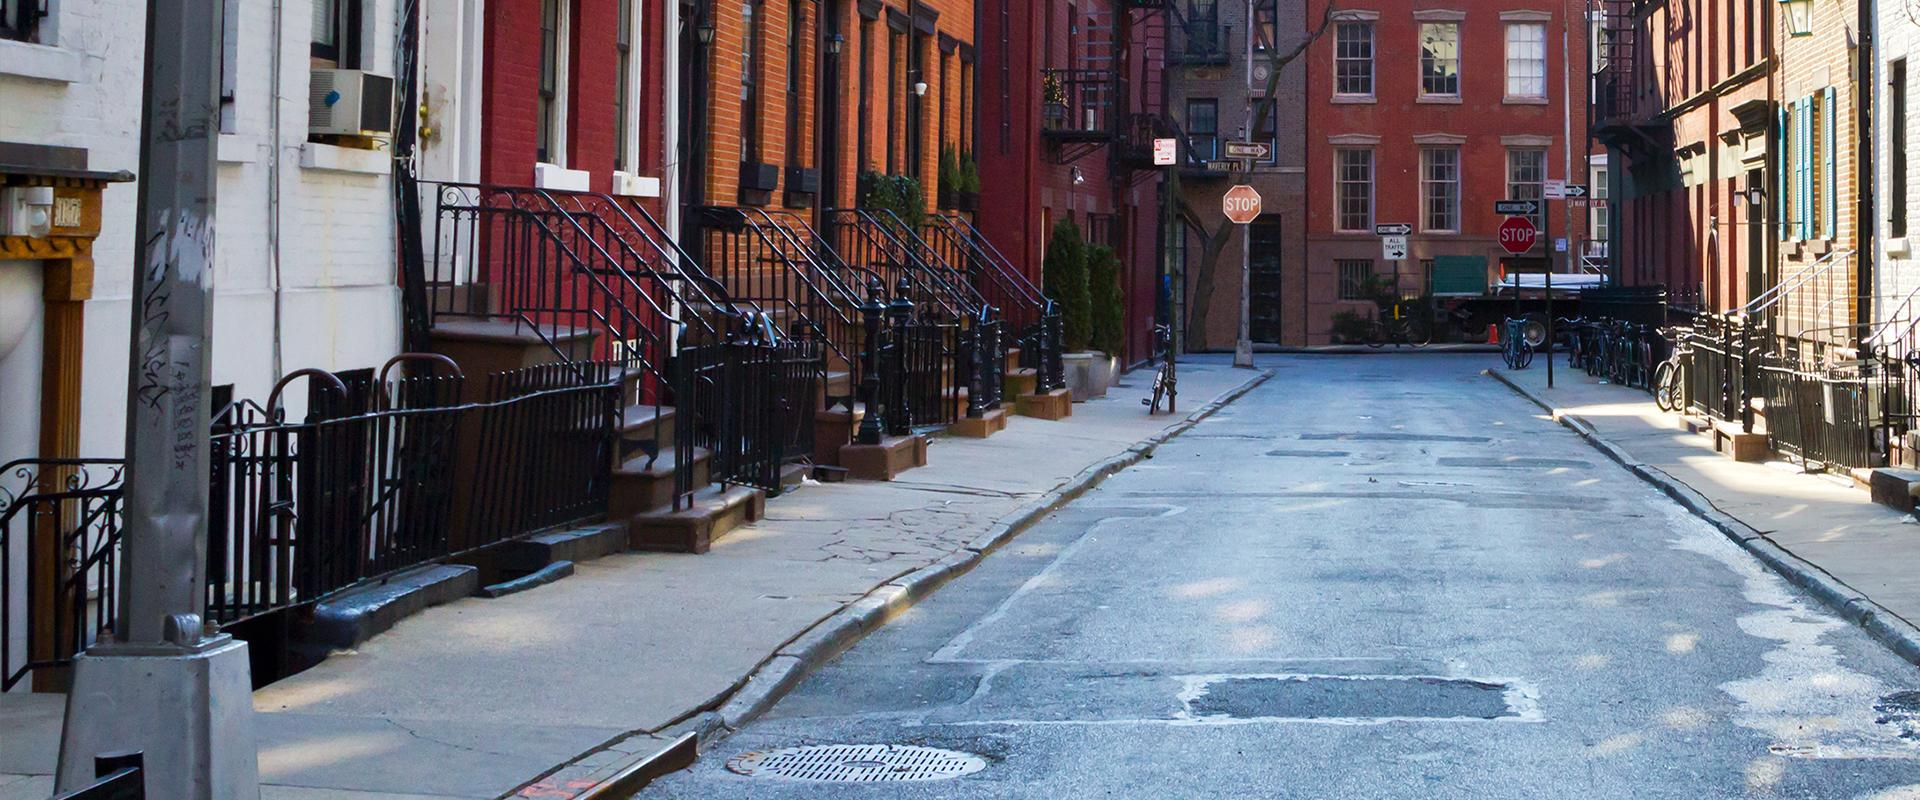 street view of new york homes